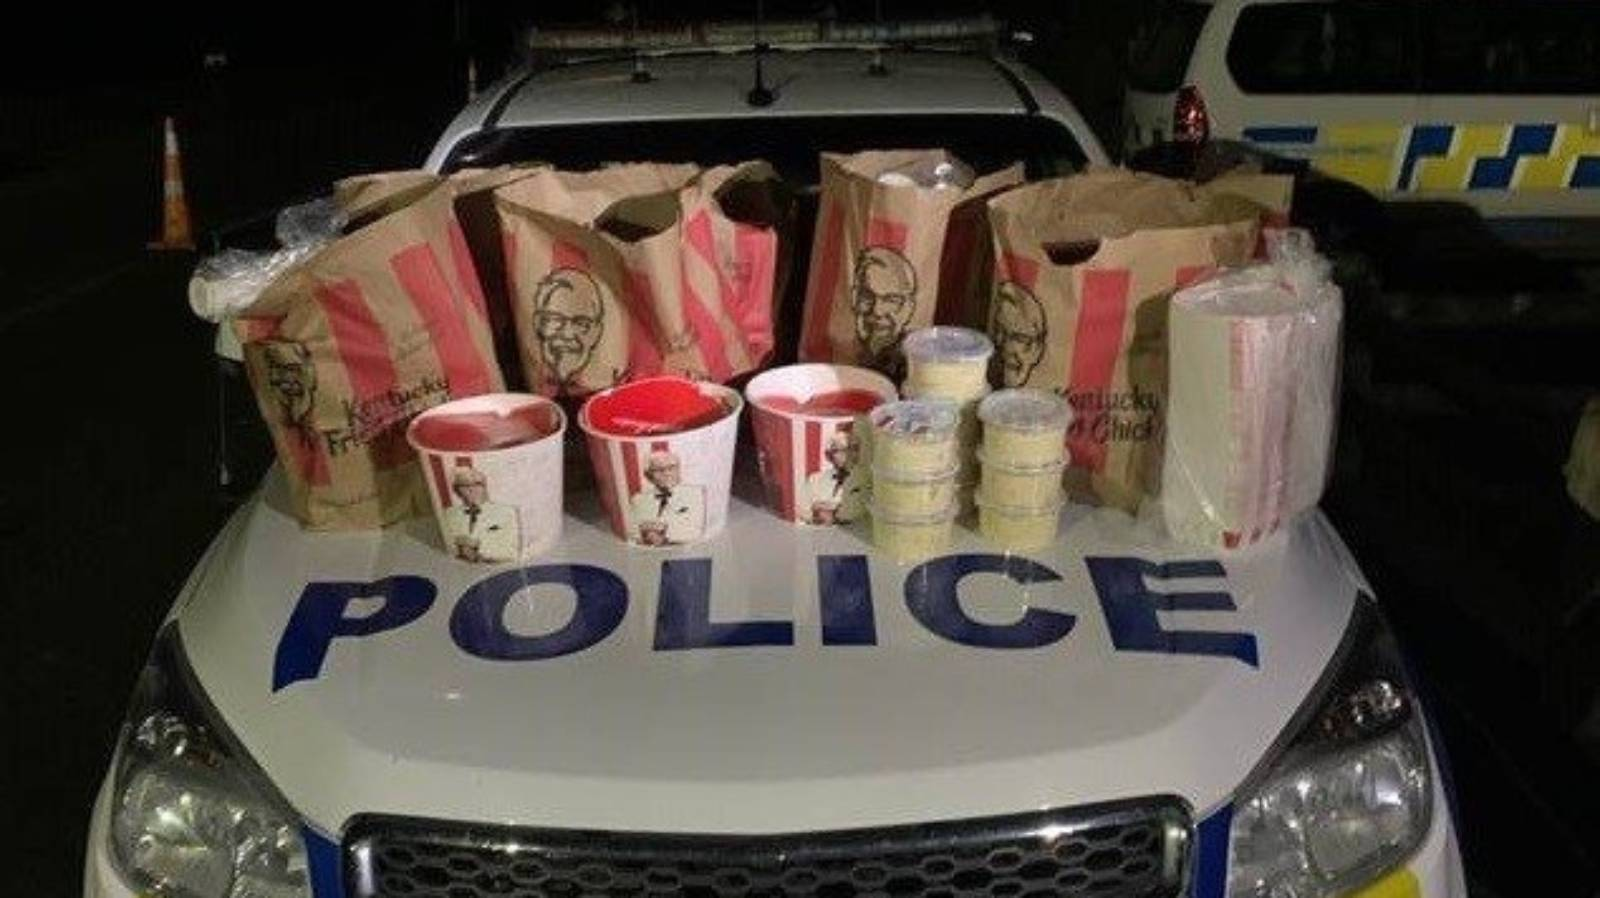 Pair caught trying to cross Auckland border with $100k and KFC